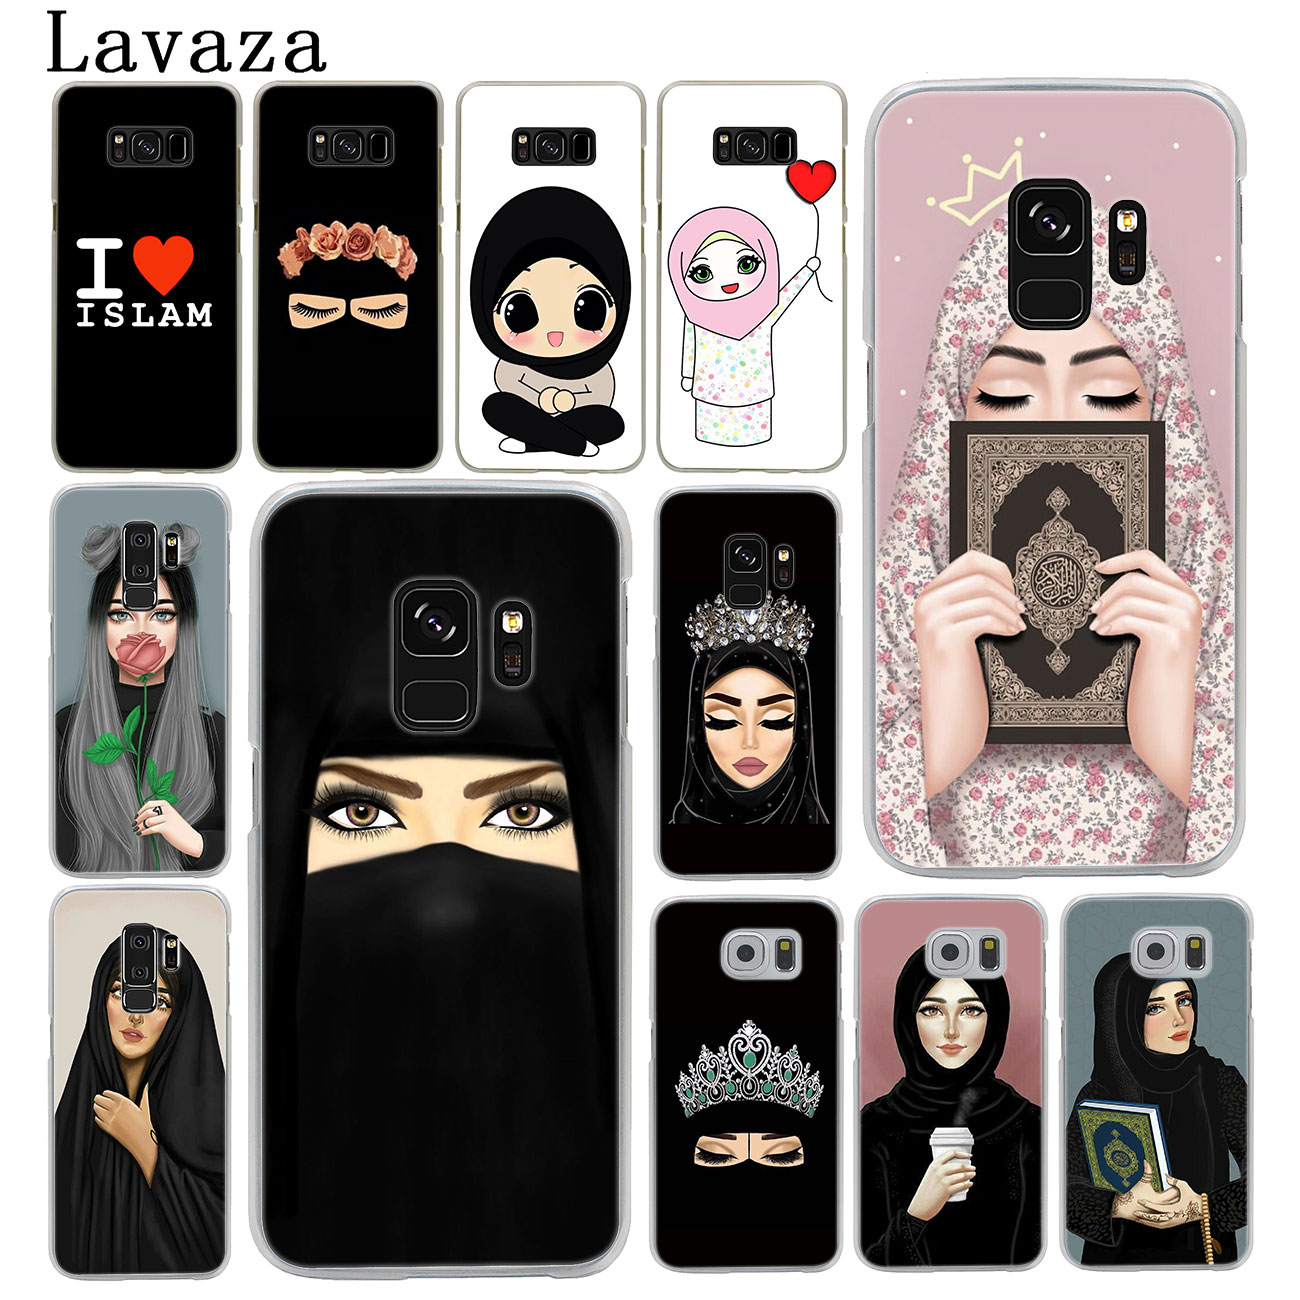 Fitted Cases Lavaza Mask Anti Gas Men Soft Silicone Case For Samsung Galaxy S6 S7 S8 S9 S10 S10e M10 M20 M30 Edge Plus Back To Search Resultscellphones & Telecommunications